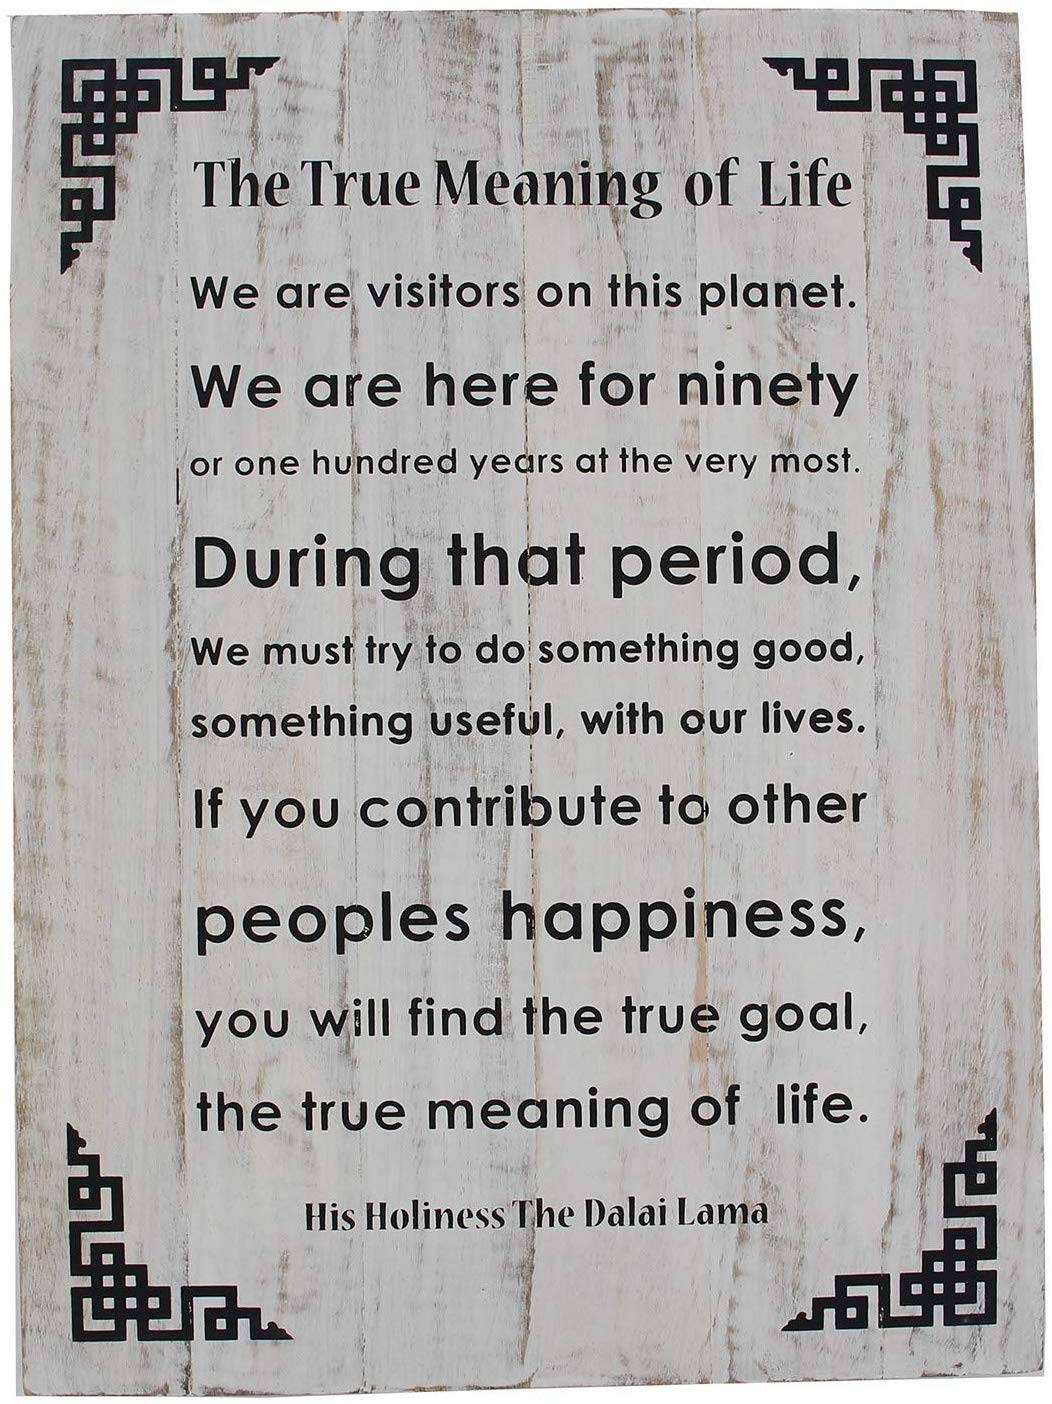 Dalai Lama Quotes ~ Wooden ~ The True Meaning of Life ~ Inspirational Message Wall Decor - DharmaObjects